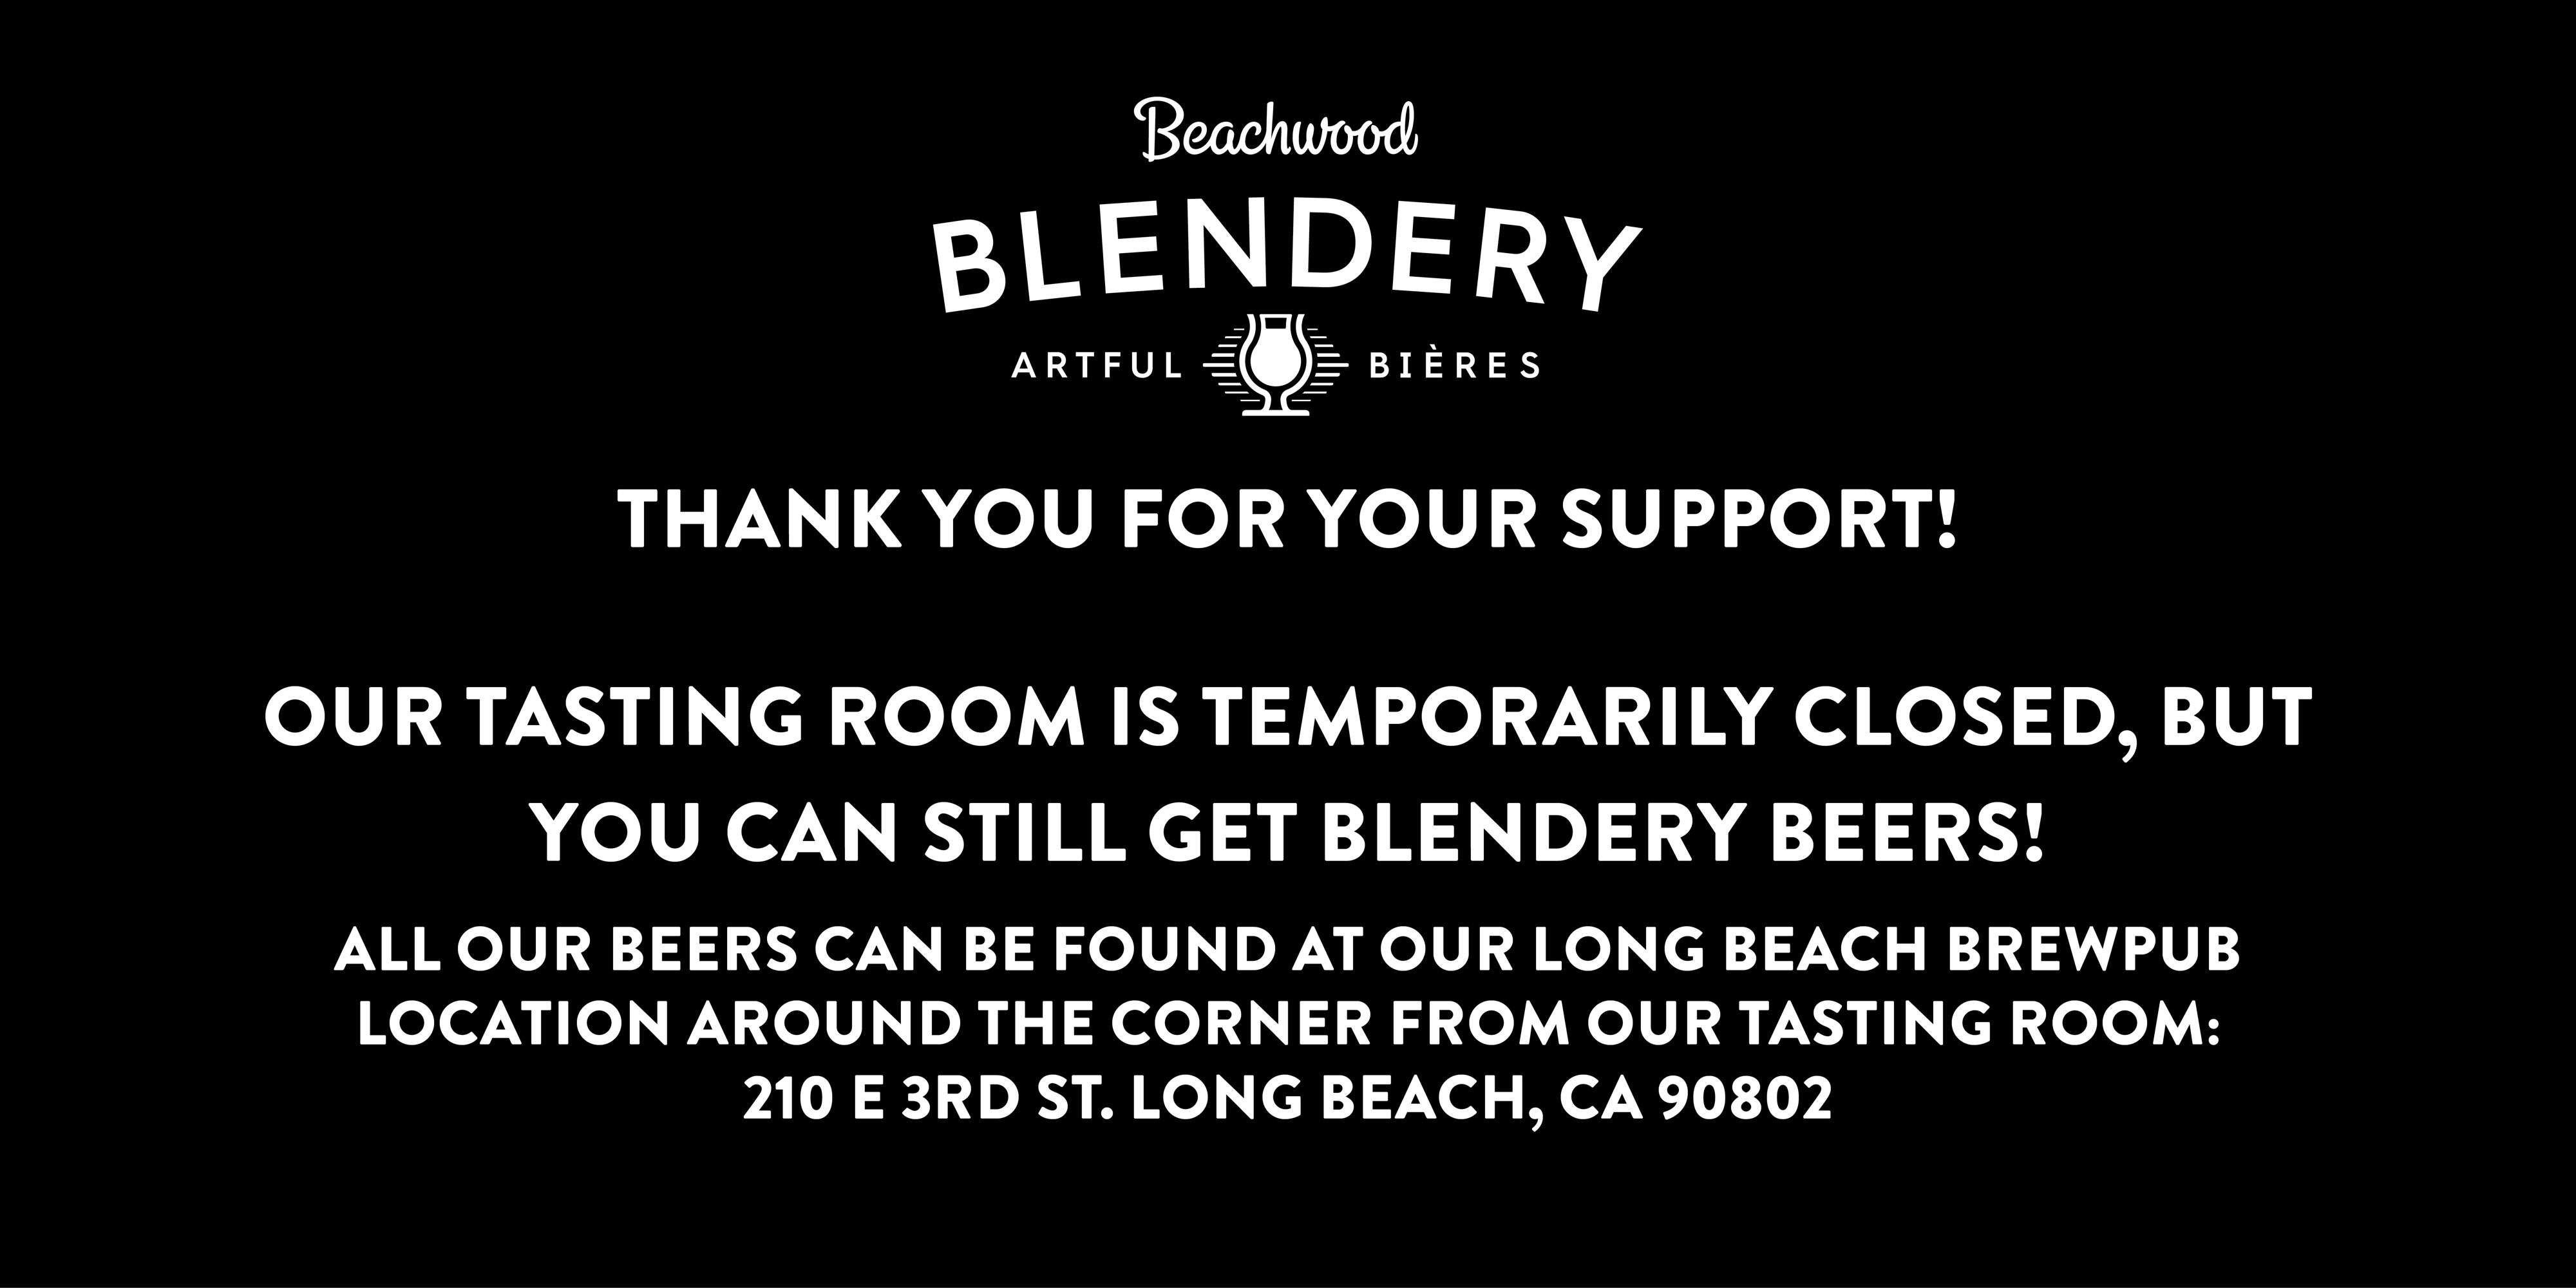 Blendery Temporarily Closed